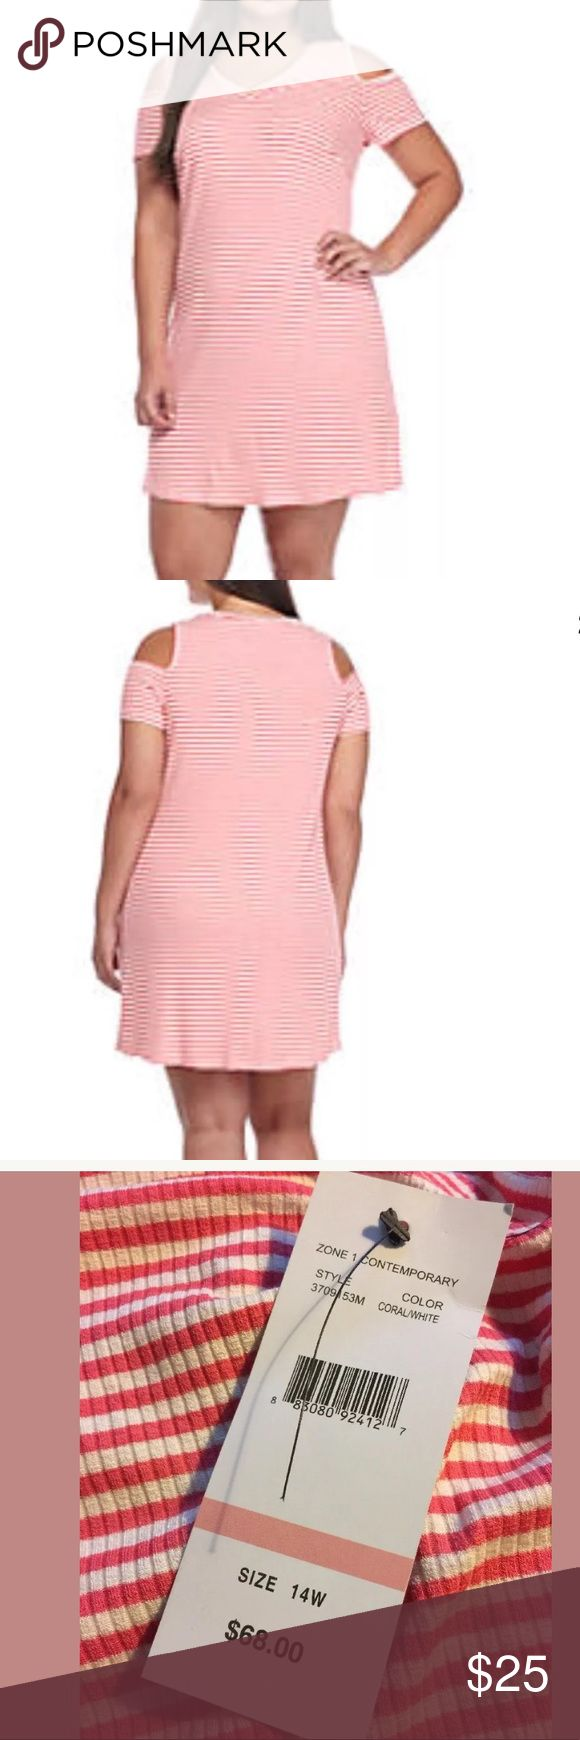 Cold Shoulder Stretch Trapeze Dress Plus Size 14W Cold Shoulder Stretch Trapeze Dress Plus Size 14W Coral White Stripe RV $68 You'll feel dainty and chic all weekend long in this trend-savvy dress! Designed with a flattering trapeze silhouette, this standout selection is the ideal pick for backyard BBQs and summertime strolls in sunny weather. 36.5-in. L Pullover V-neck Short cold shoulder sleeves Unlined Machine washable Rayon/RayonBlend Smoke free home Chetta B Dresses